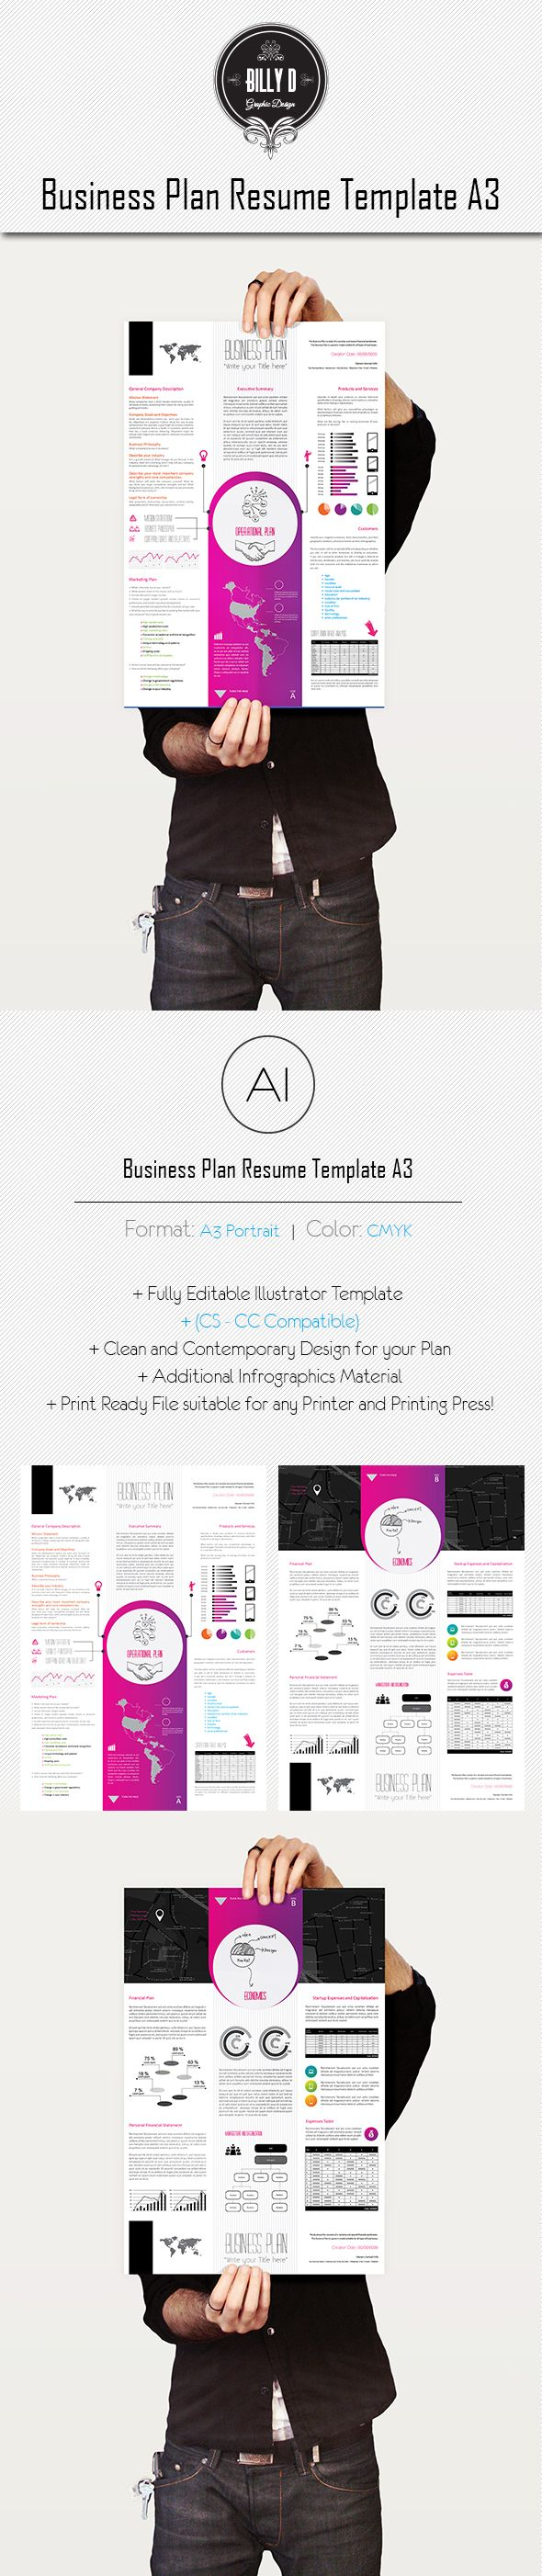 Business Plan Resume Template A3 on Behance Resume